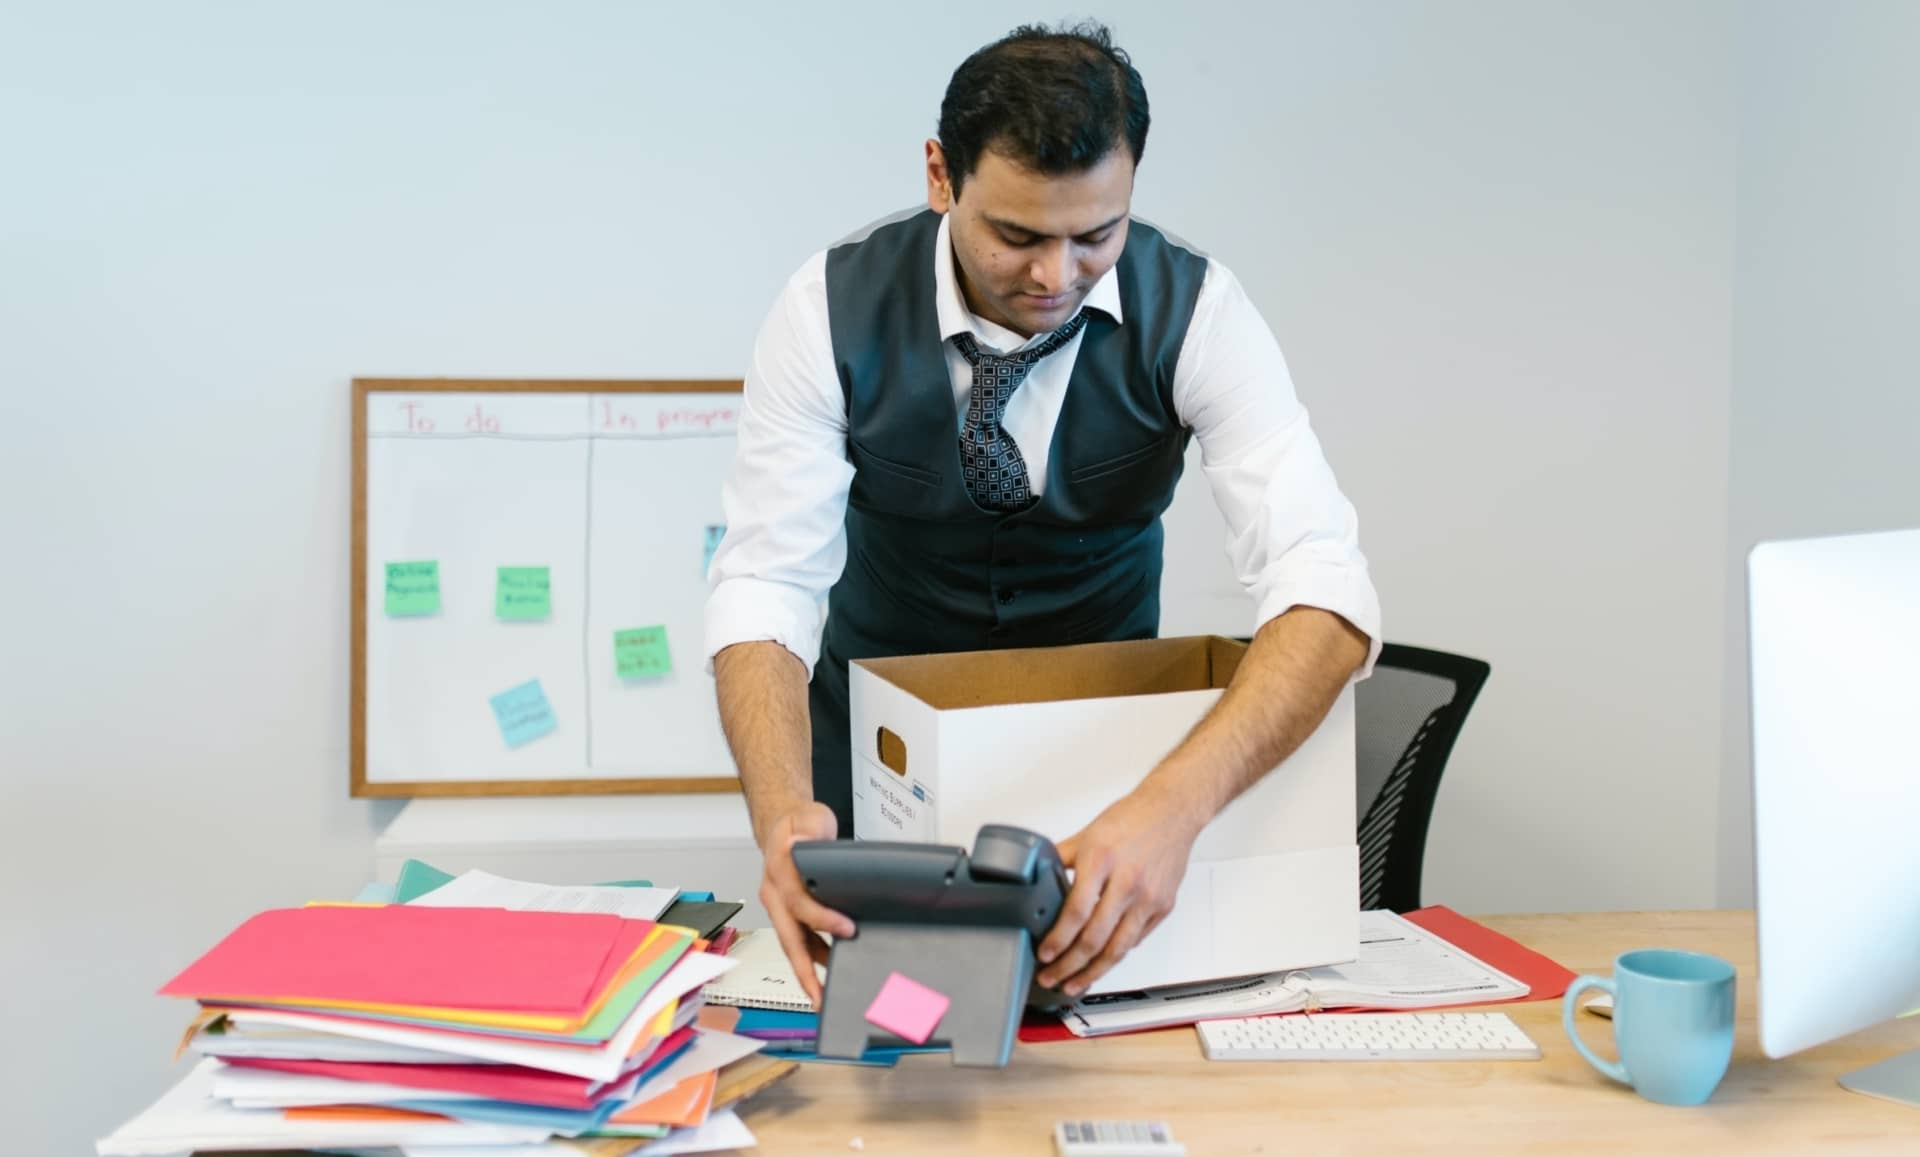 man cleaning up his desk